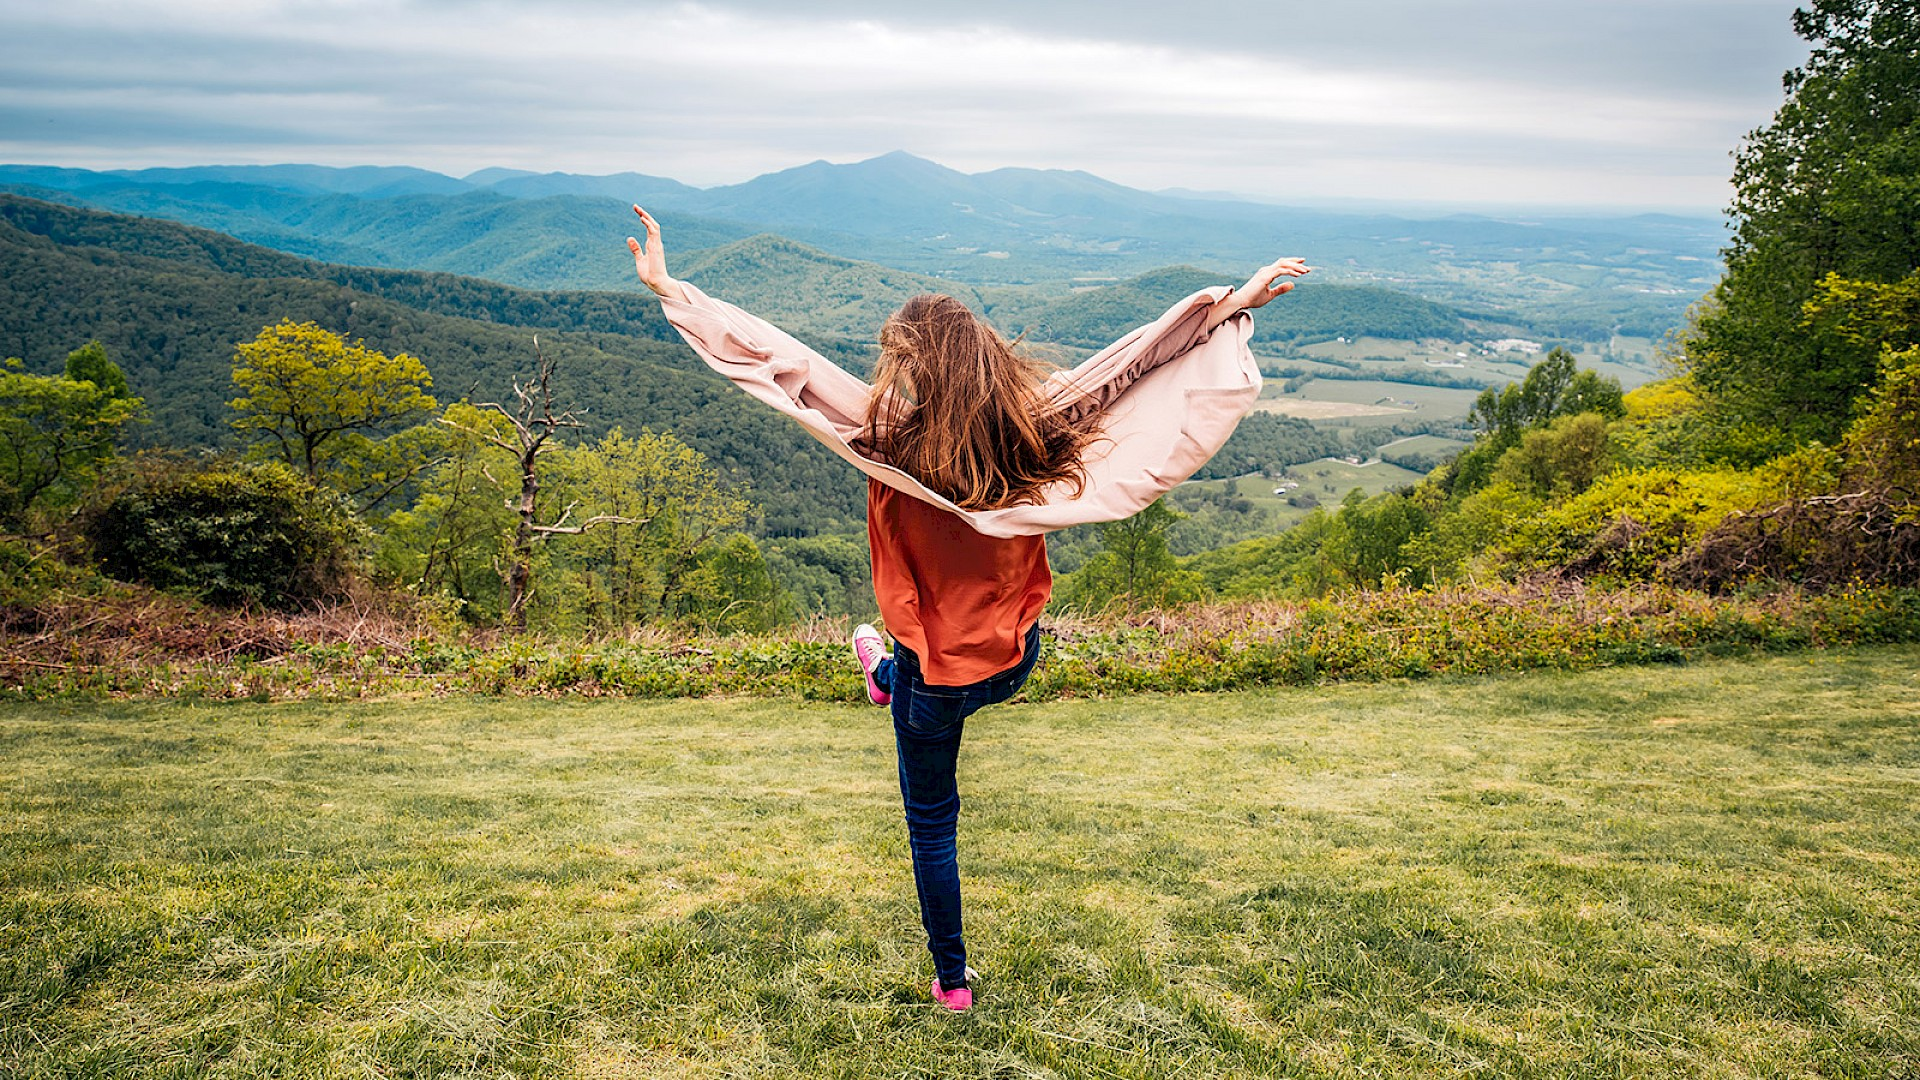 Teenage girl on top of a hill with her hands in the air